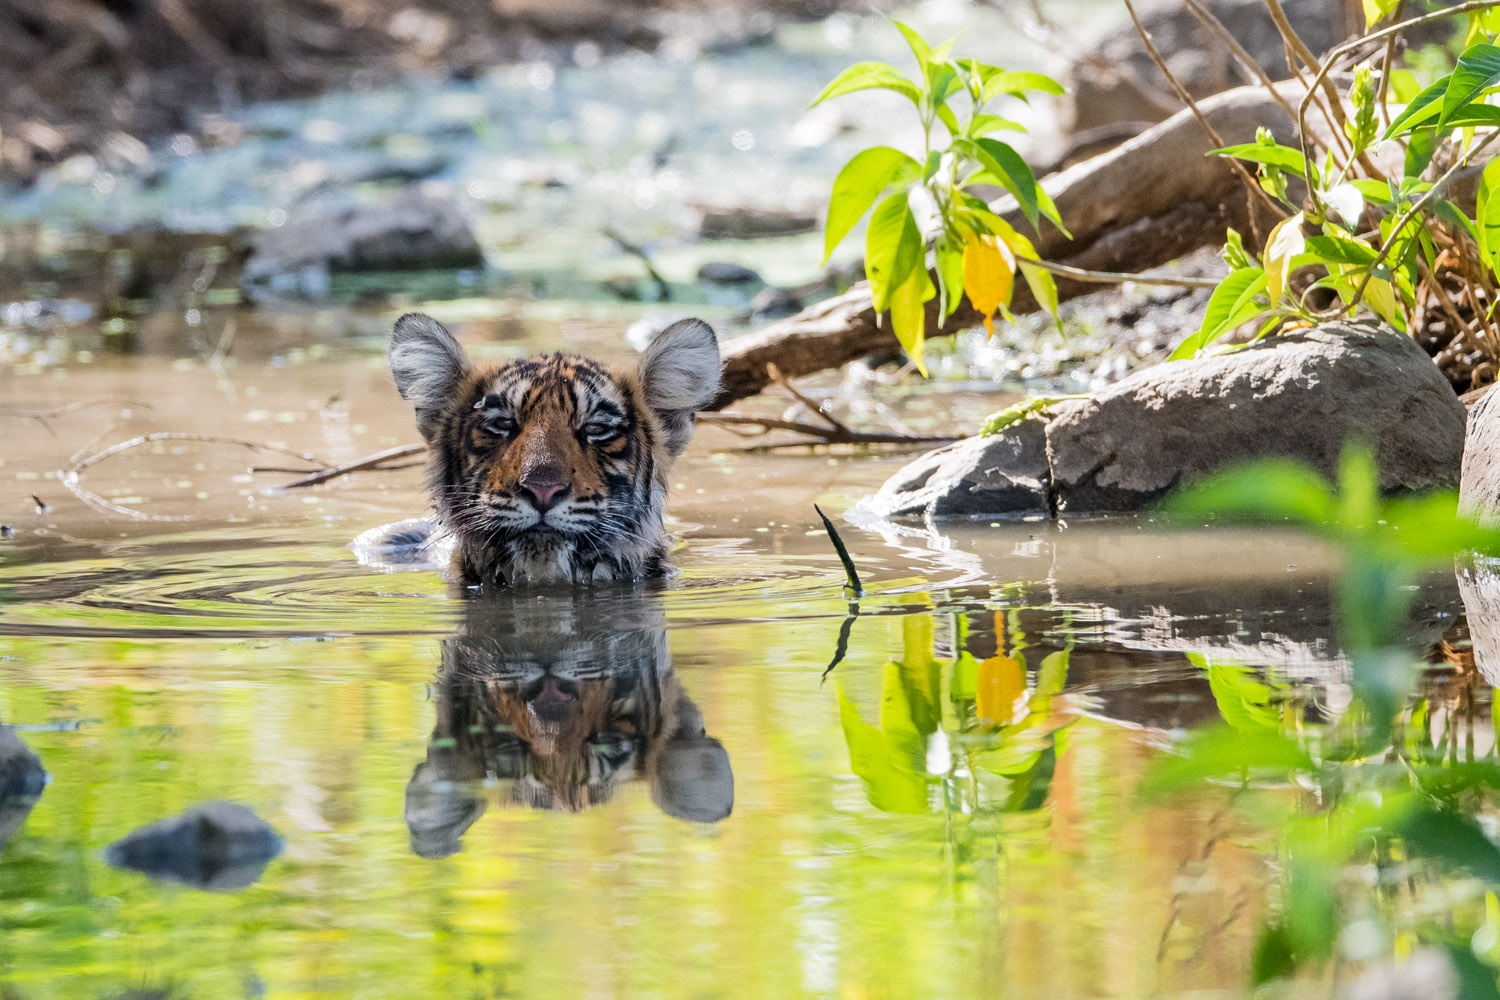 Bengal tiger cub bathing in stream, Ranthambhore National Park, Rajasthan, India